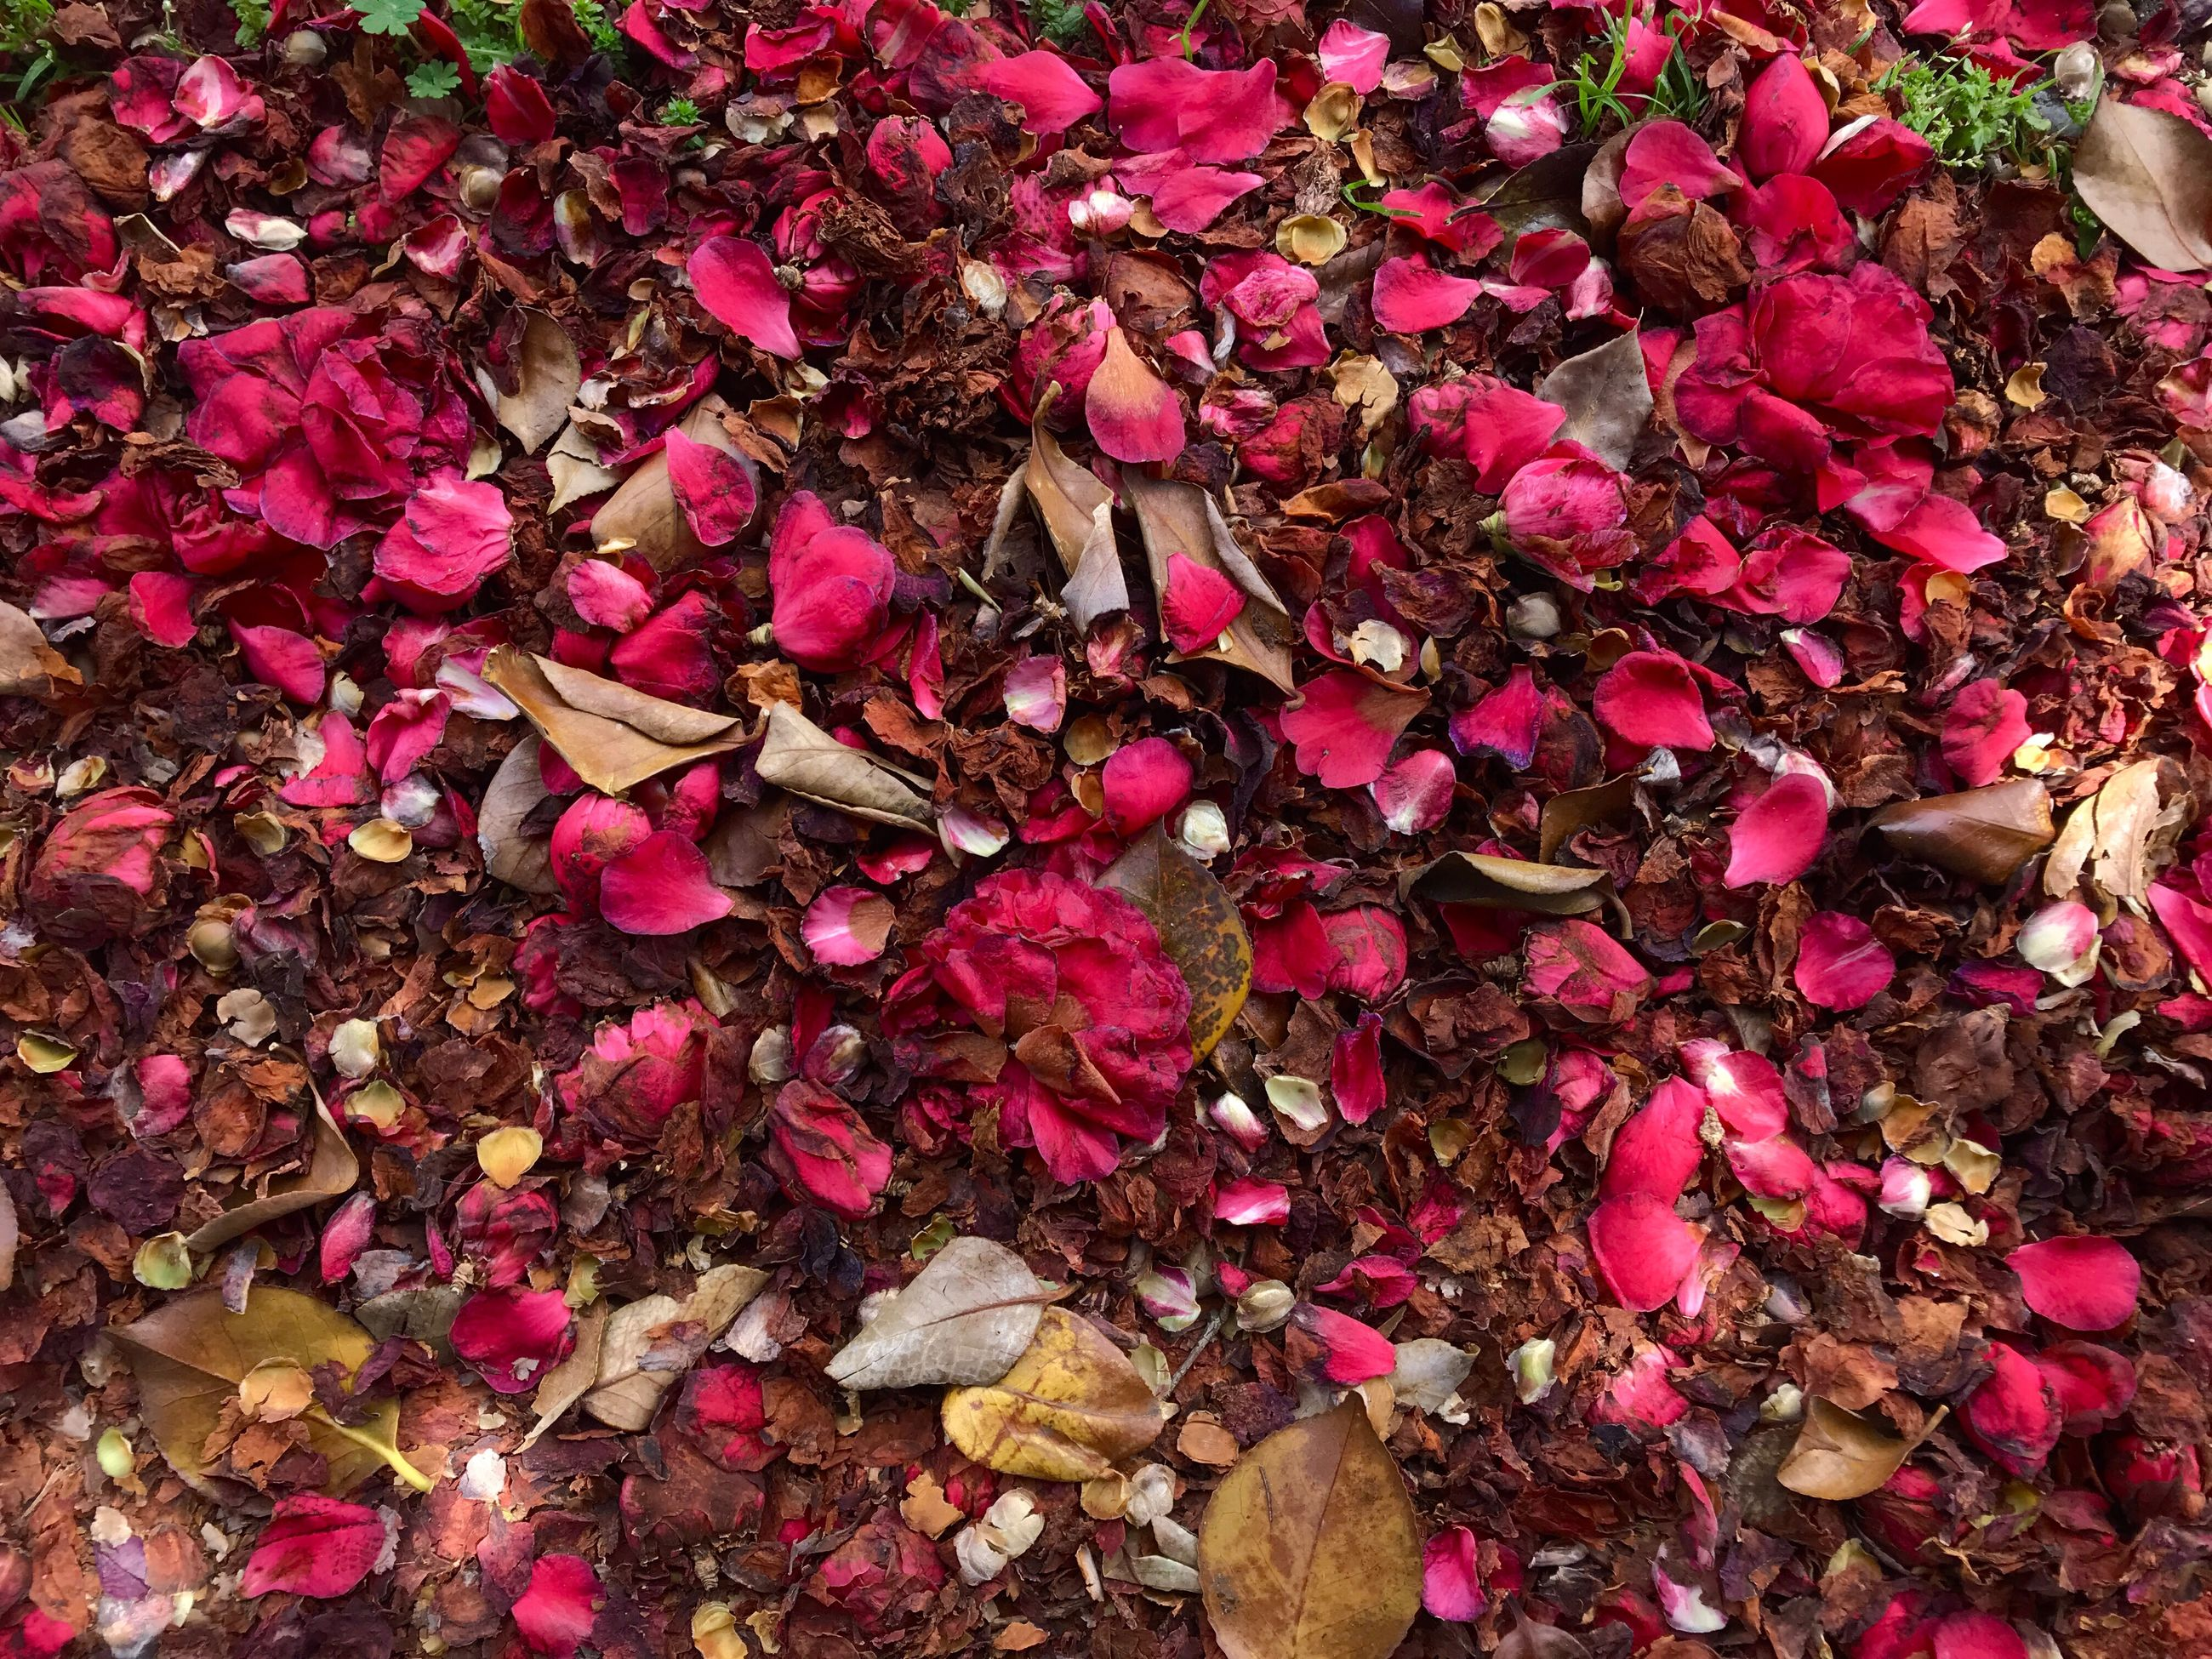 full frame, flower, pink color, abundance, plant, beauty in nature, backgrounds, nature, large group of objects, petal, flowering plant, no people, freshness, high angle view, rose petals, close-up, rose - flower, rose, outdoors, dry, luxury, purple